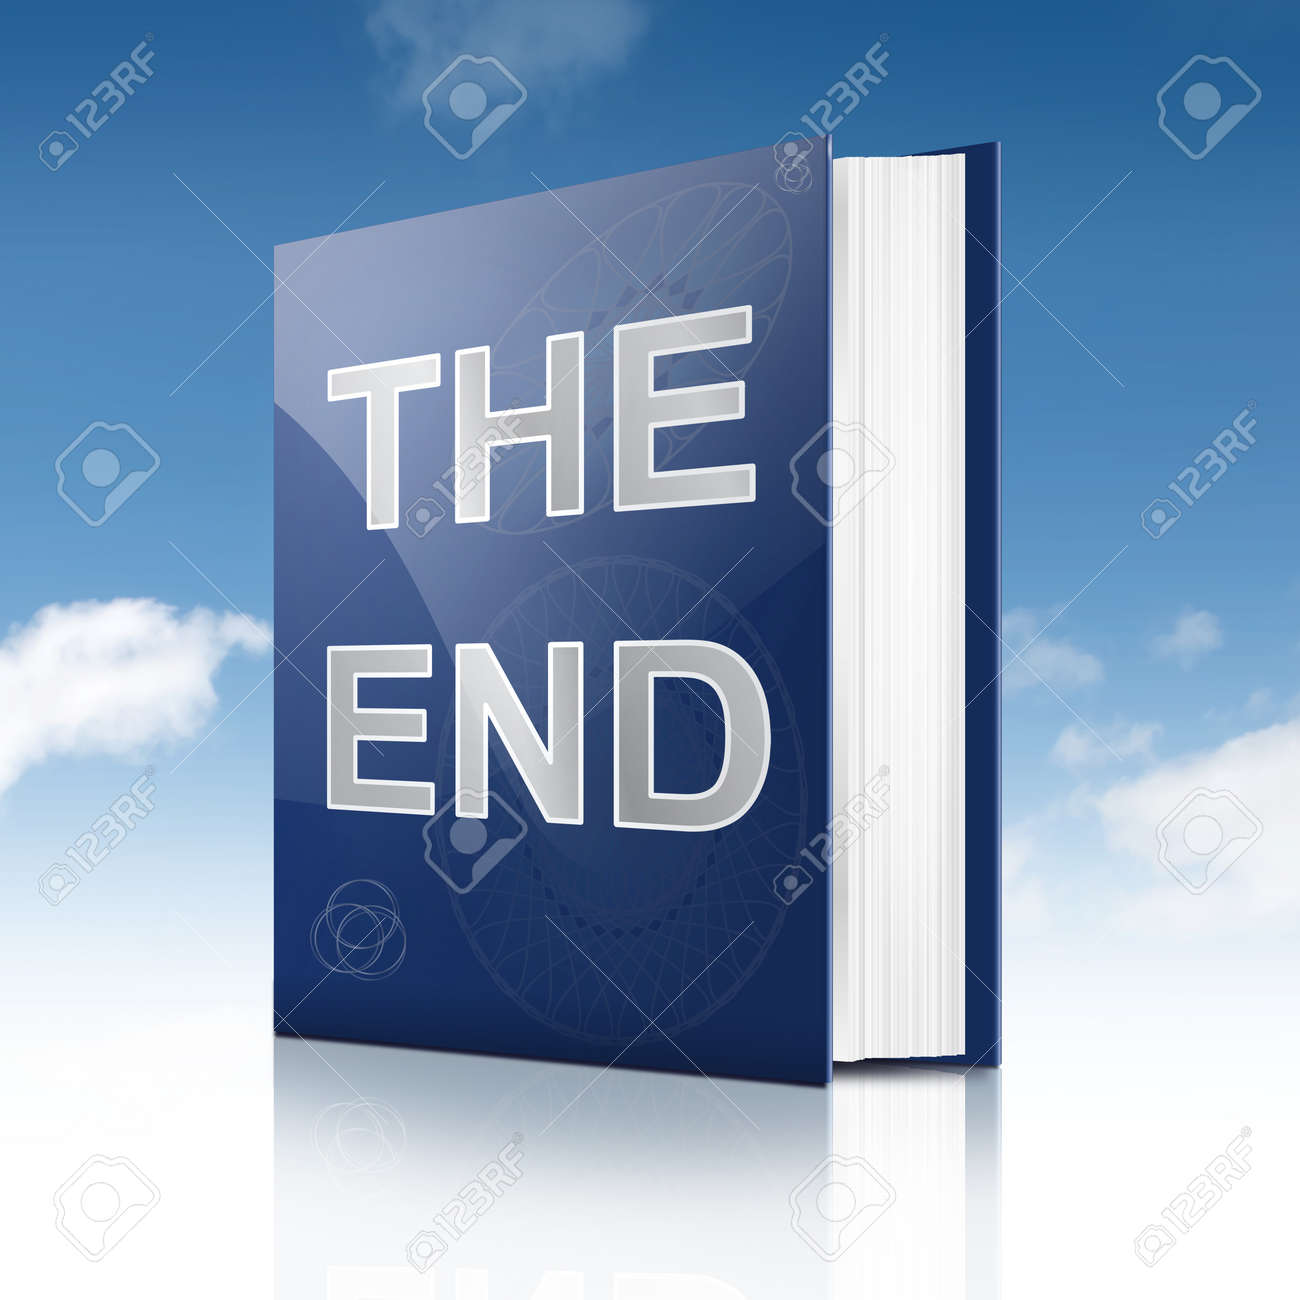 Illustration depicting a book with the end concept title  Sky background Stock Photo - 16952410